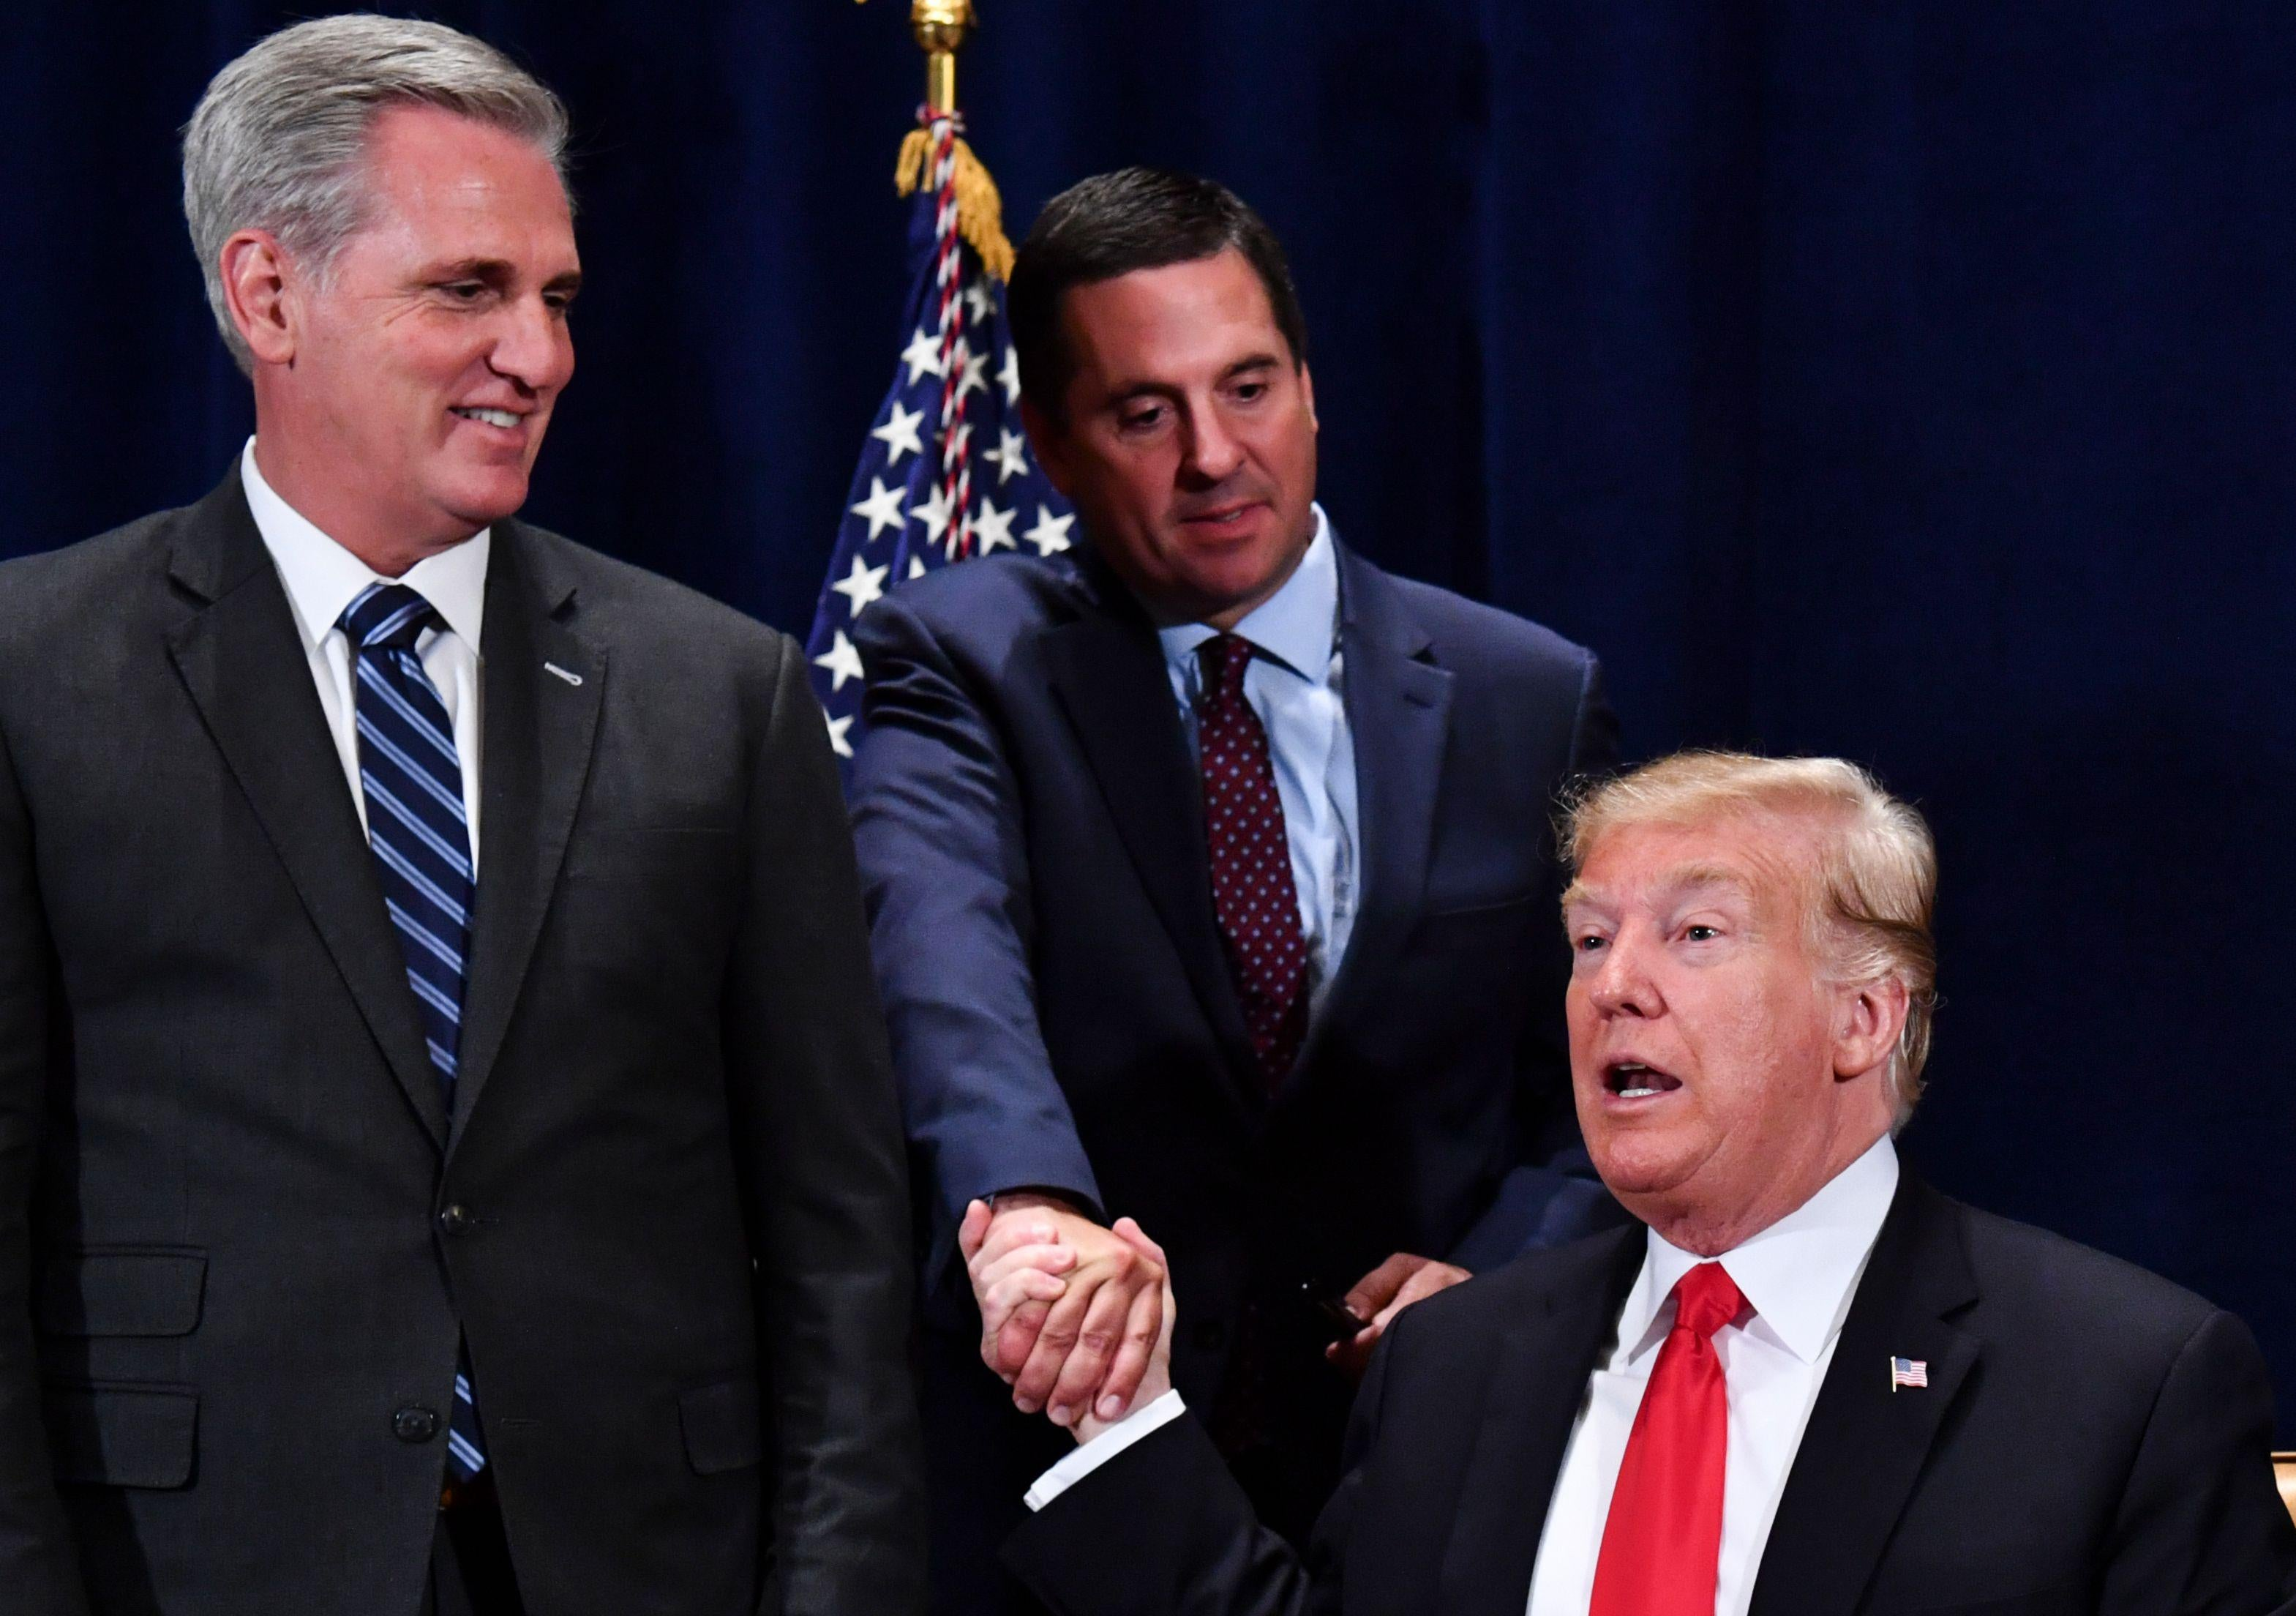 President Trump shakes hands with Rep. Devin Nunes as then-House Majority Leader Kevin McCarthy looks on Oct. 19, 2018.